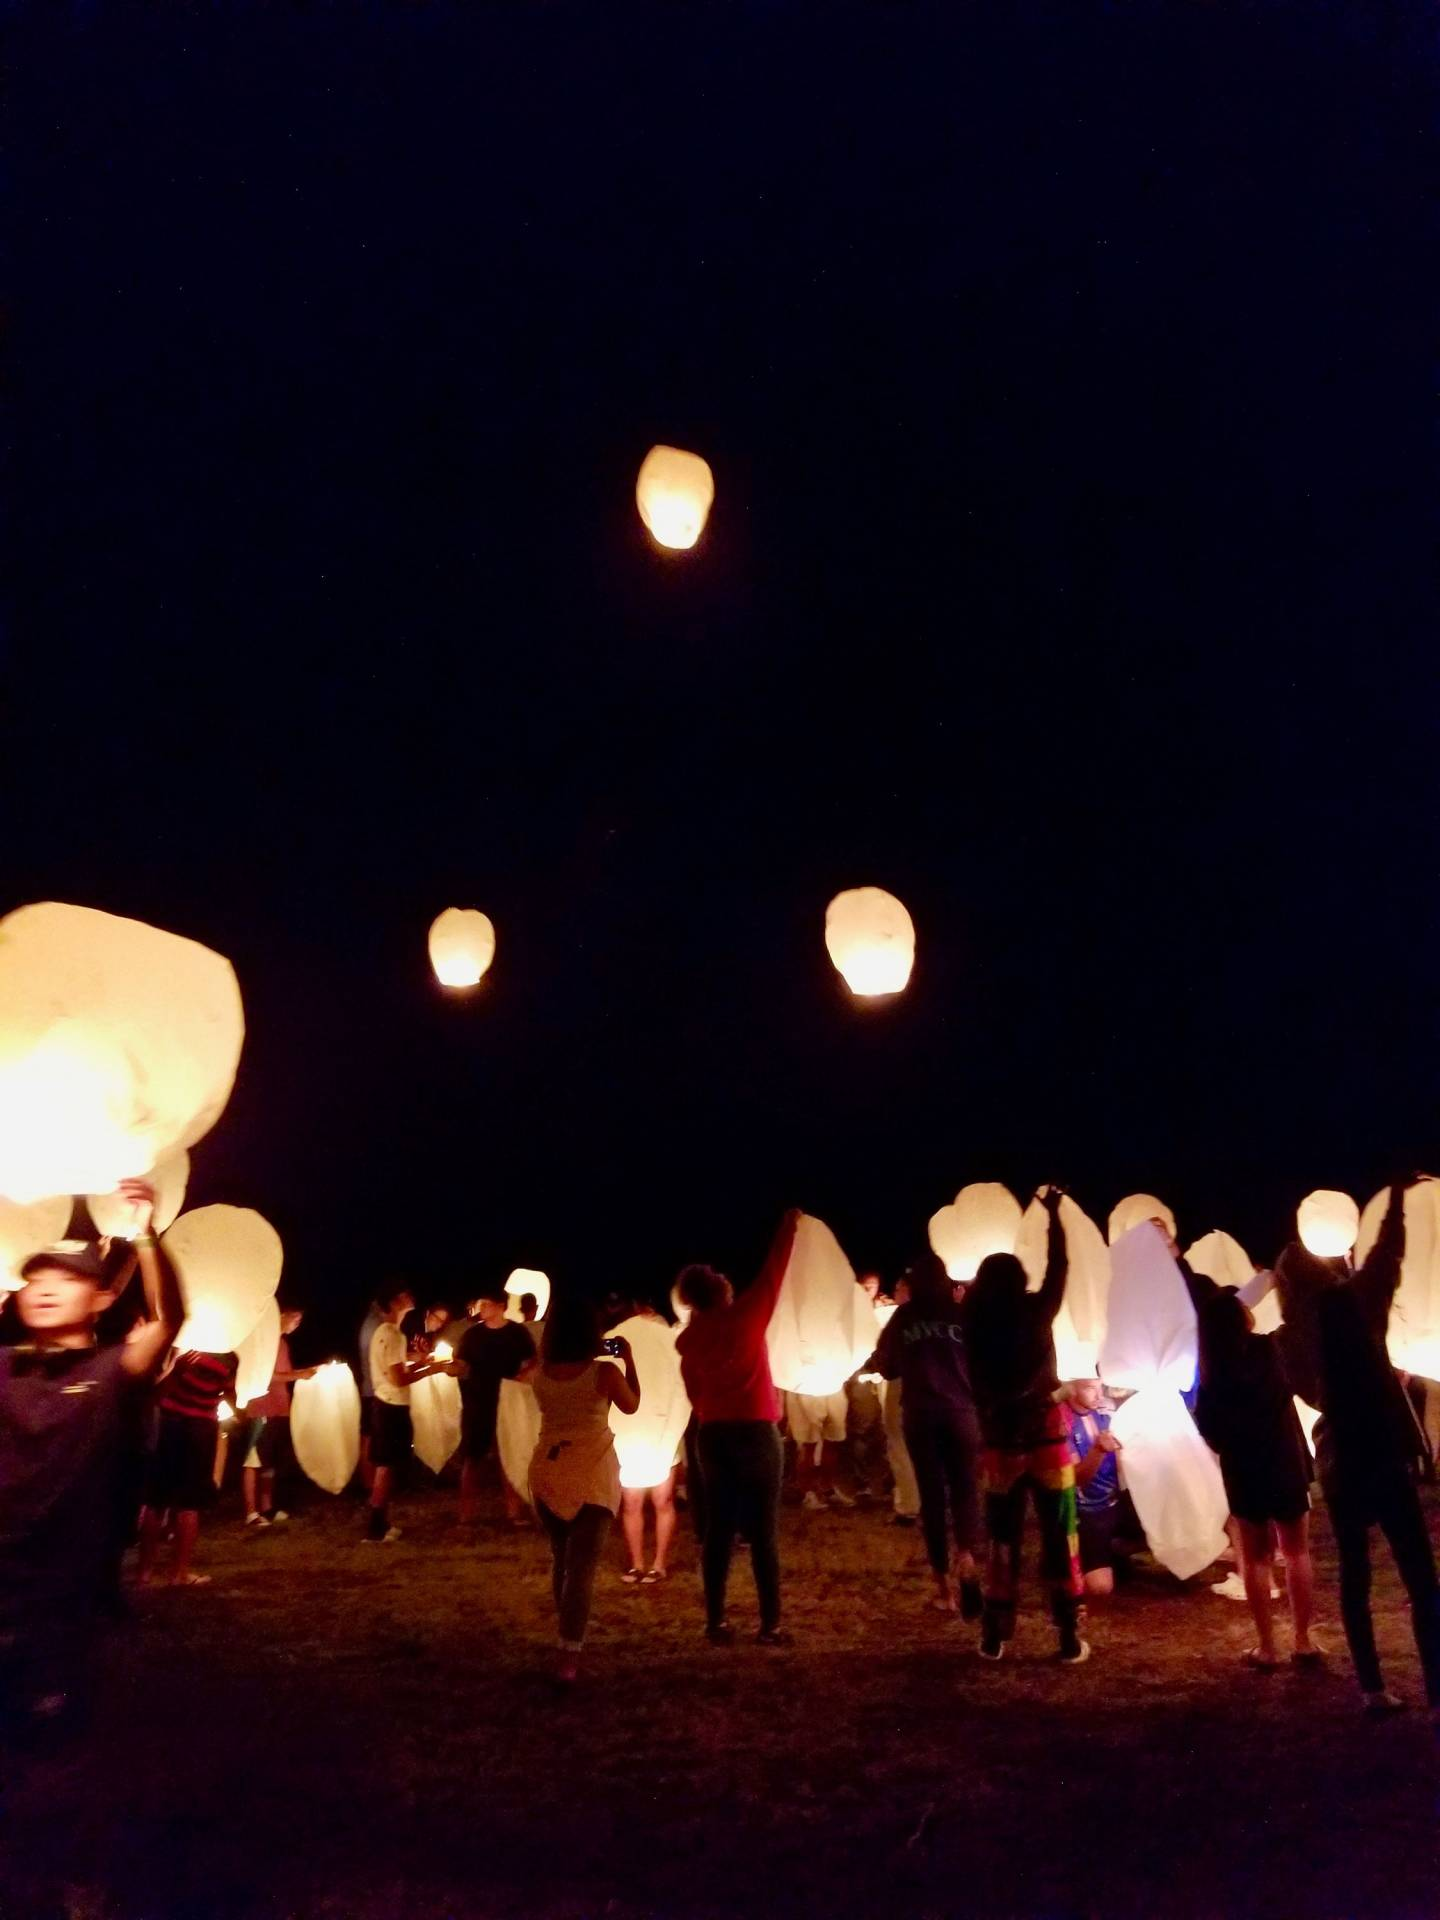 Campers releasing paper lanterns into the sky